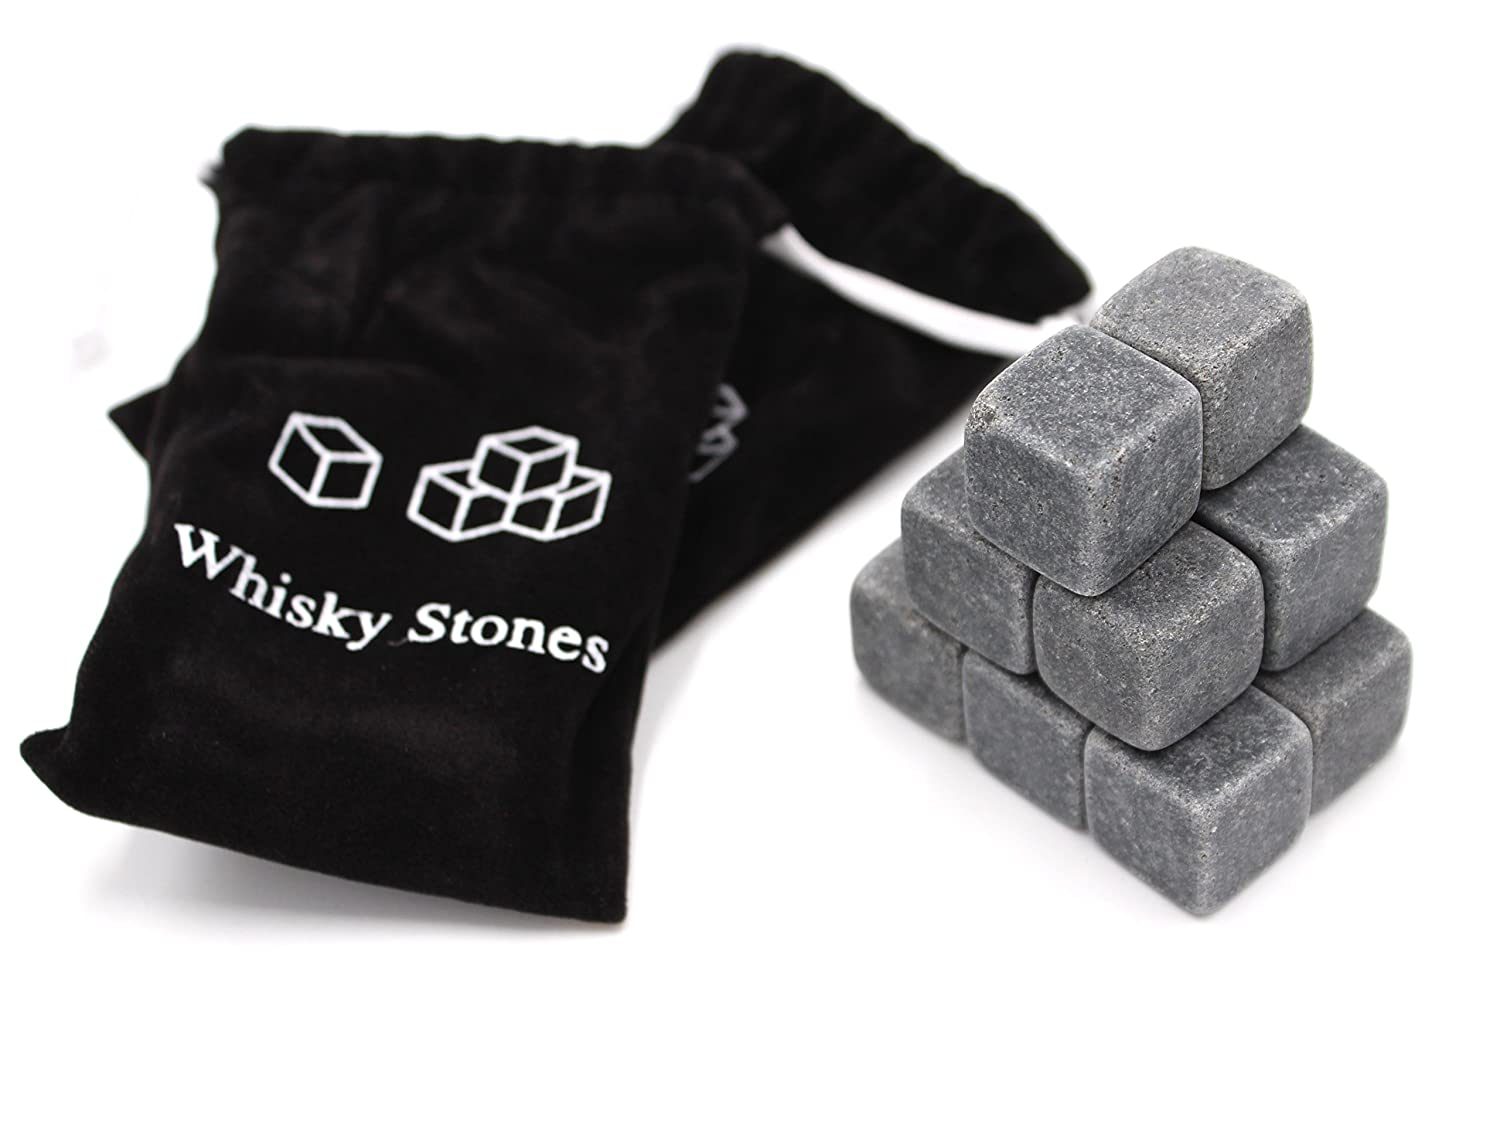 Set of 18 - Pure Soapstone Reusable Chilling Rocks for Whiskey - No Water Dilution & Perfect For Liquor, Wine and Other Beverages - With 2 Velvet Bags Included (Grey Color) FIVOENDAR